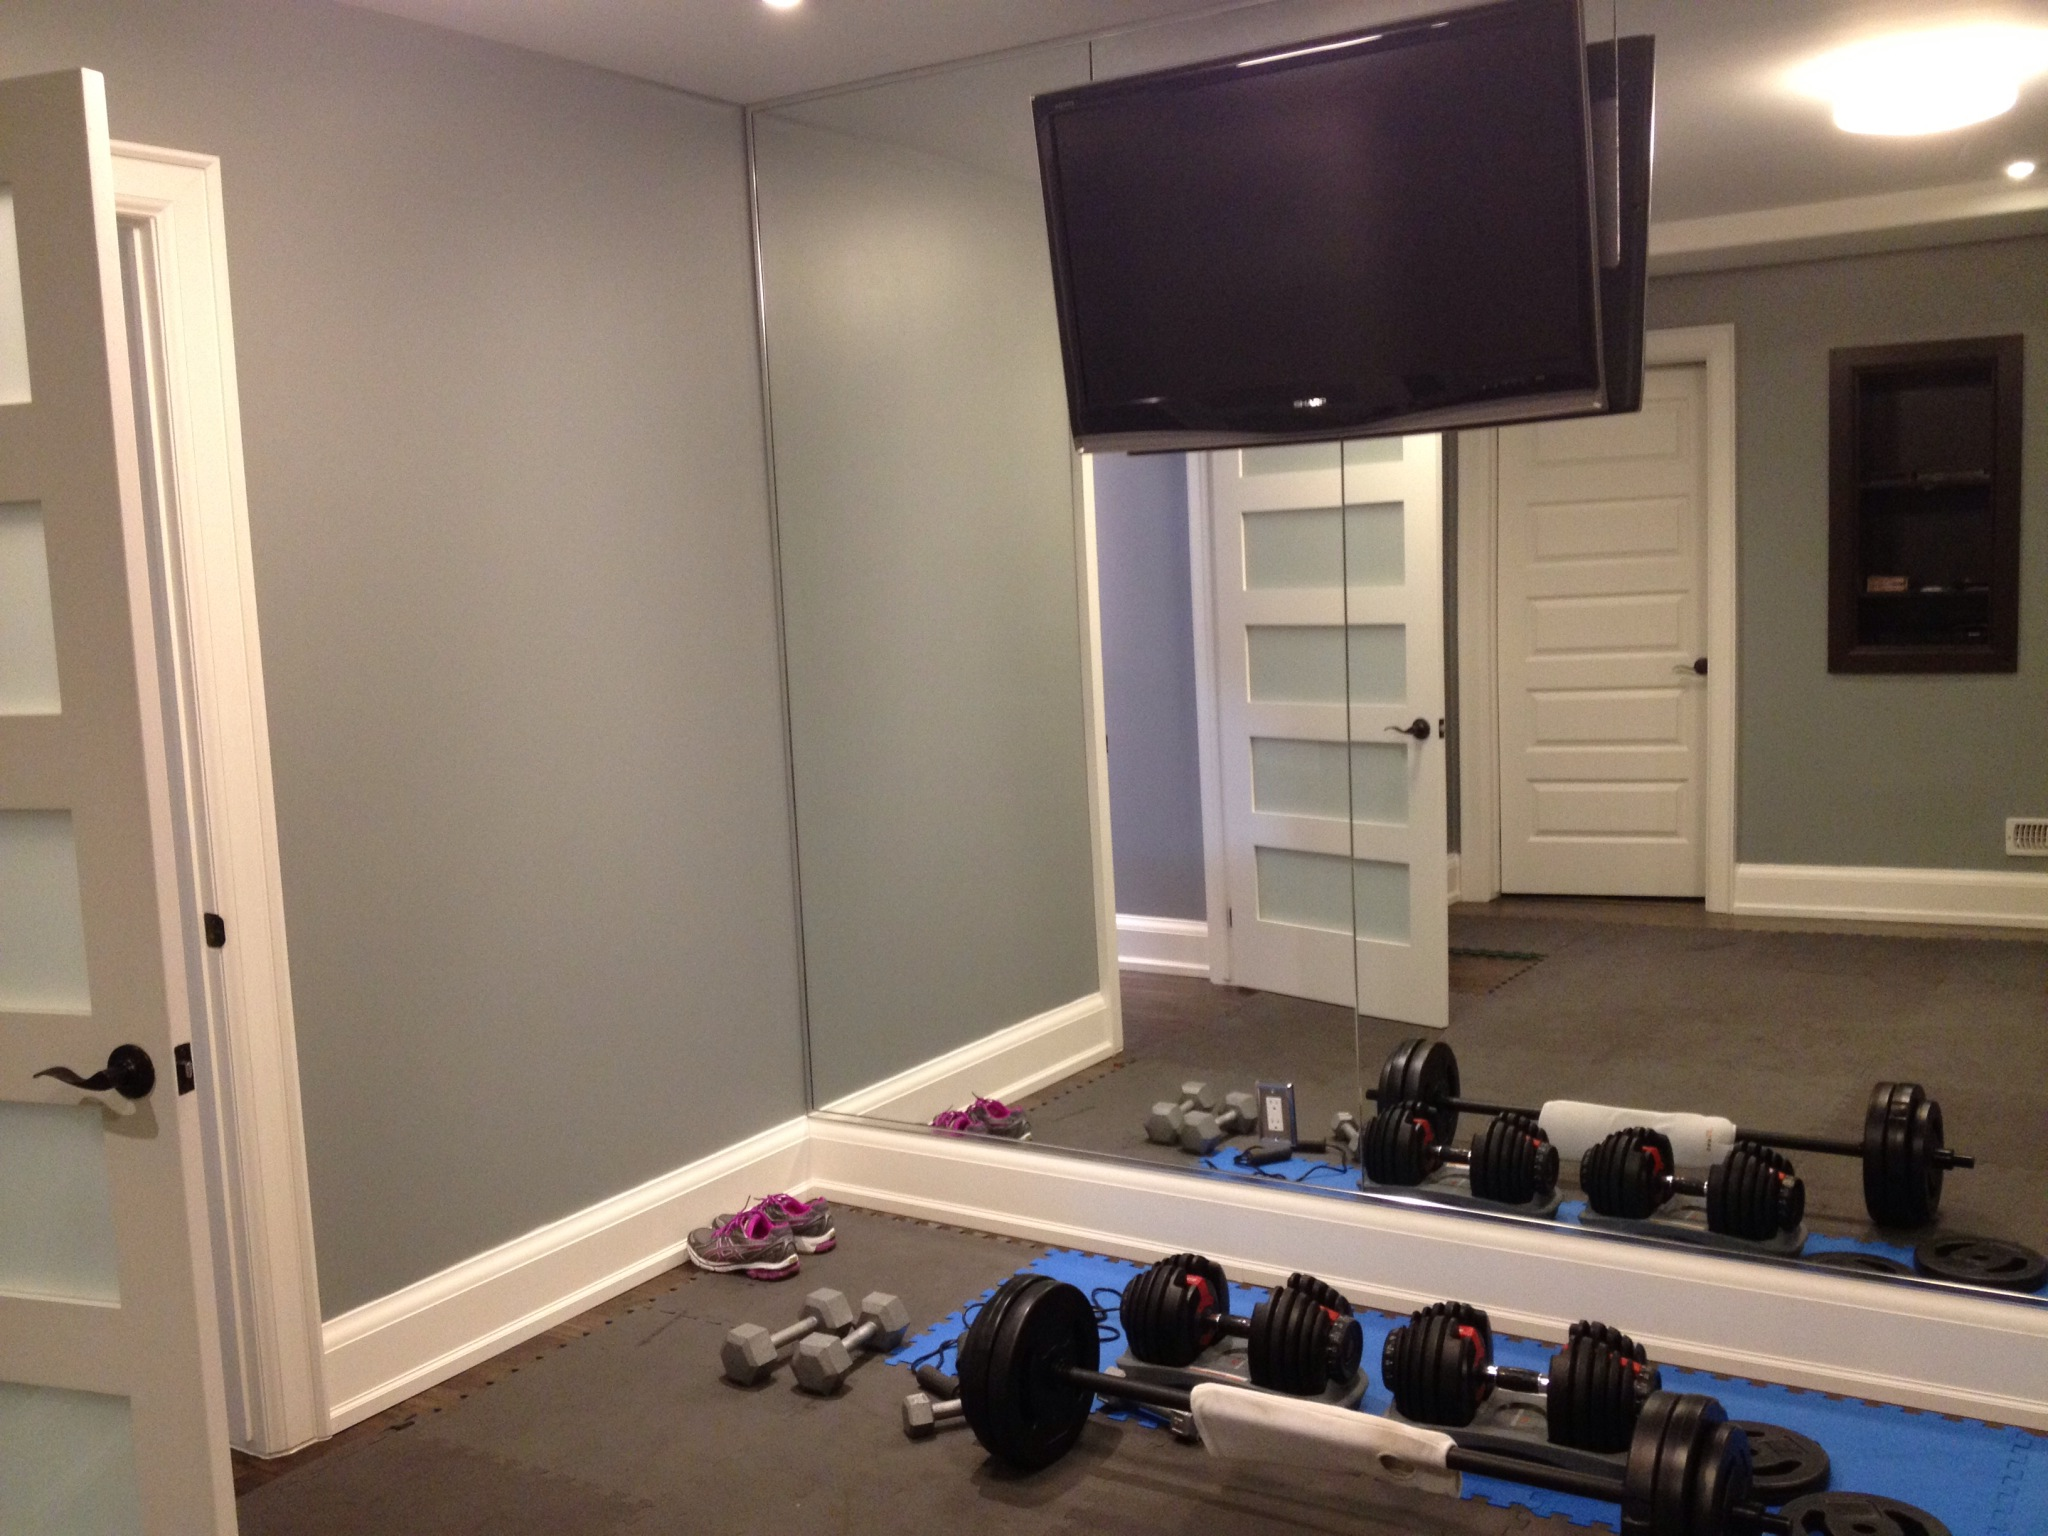 Ikea Home Planner Very Cheap Gym Mirrors | Garage Gym Planner: Best Home